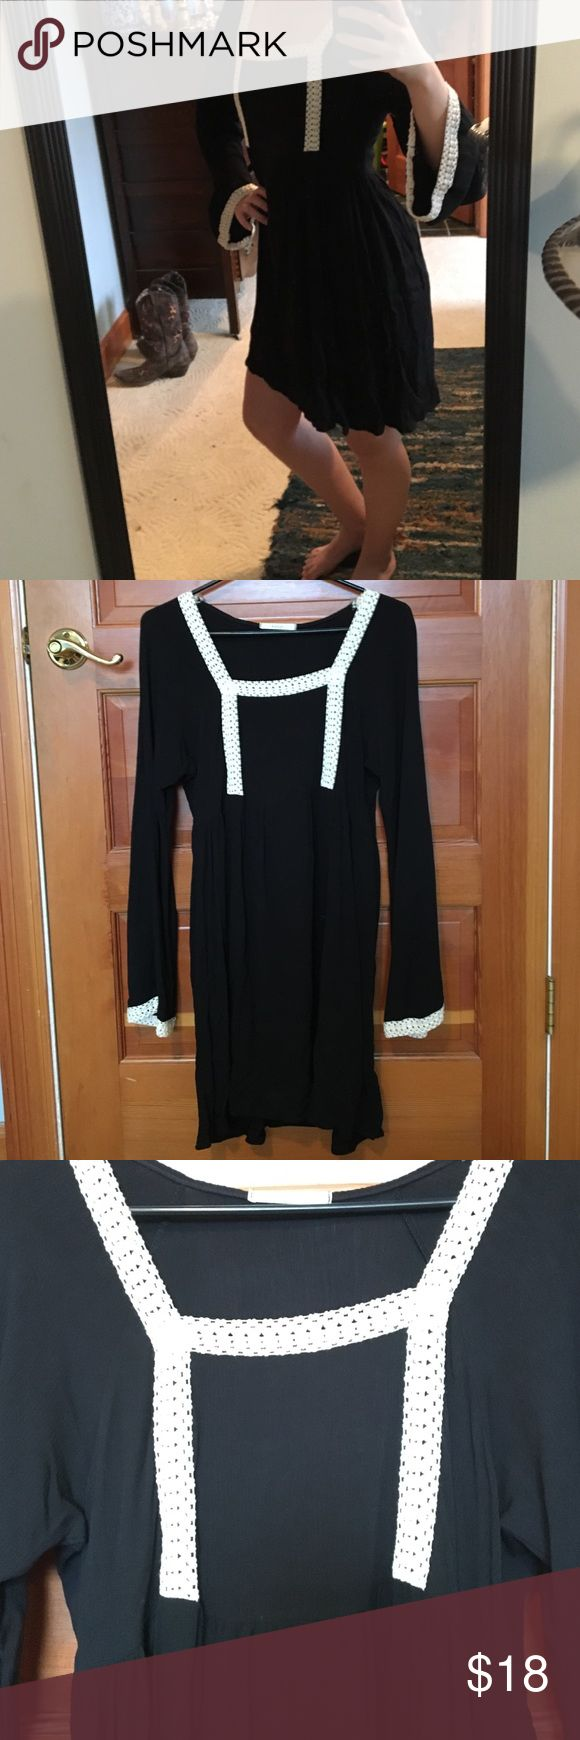 Country Outfitter Dress So cute and flowy! 100% Raylon, never worn! Dresses Mini